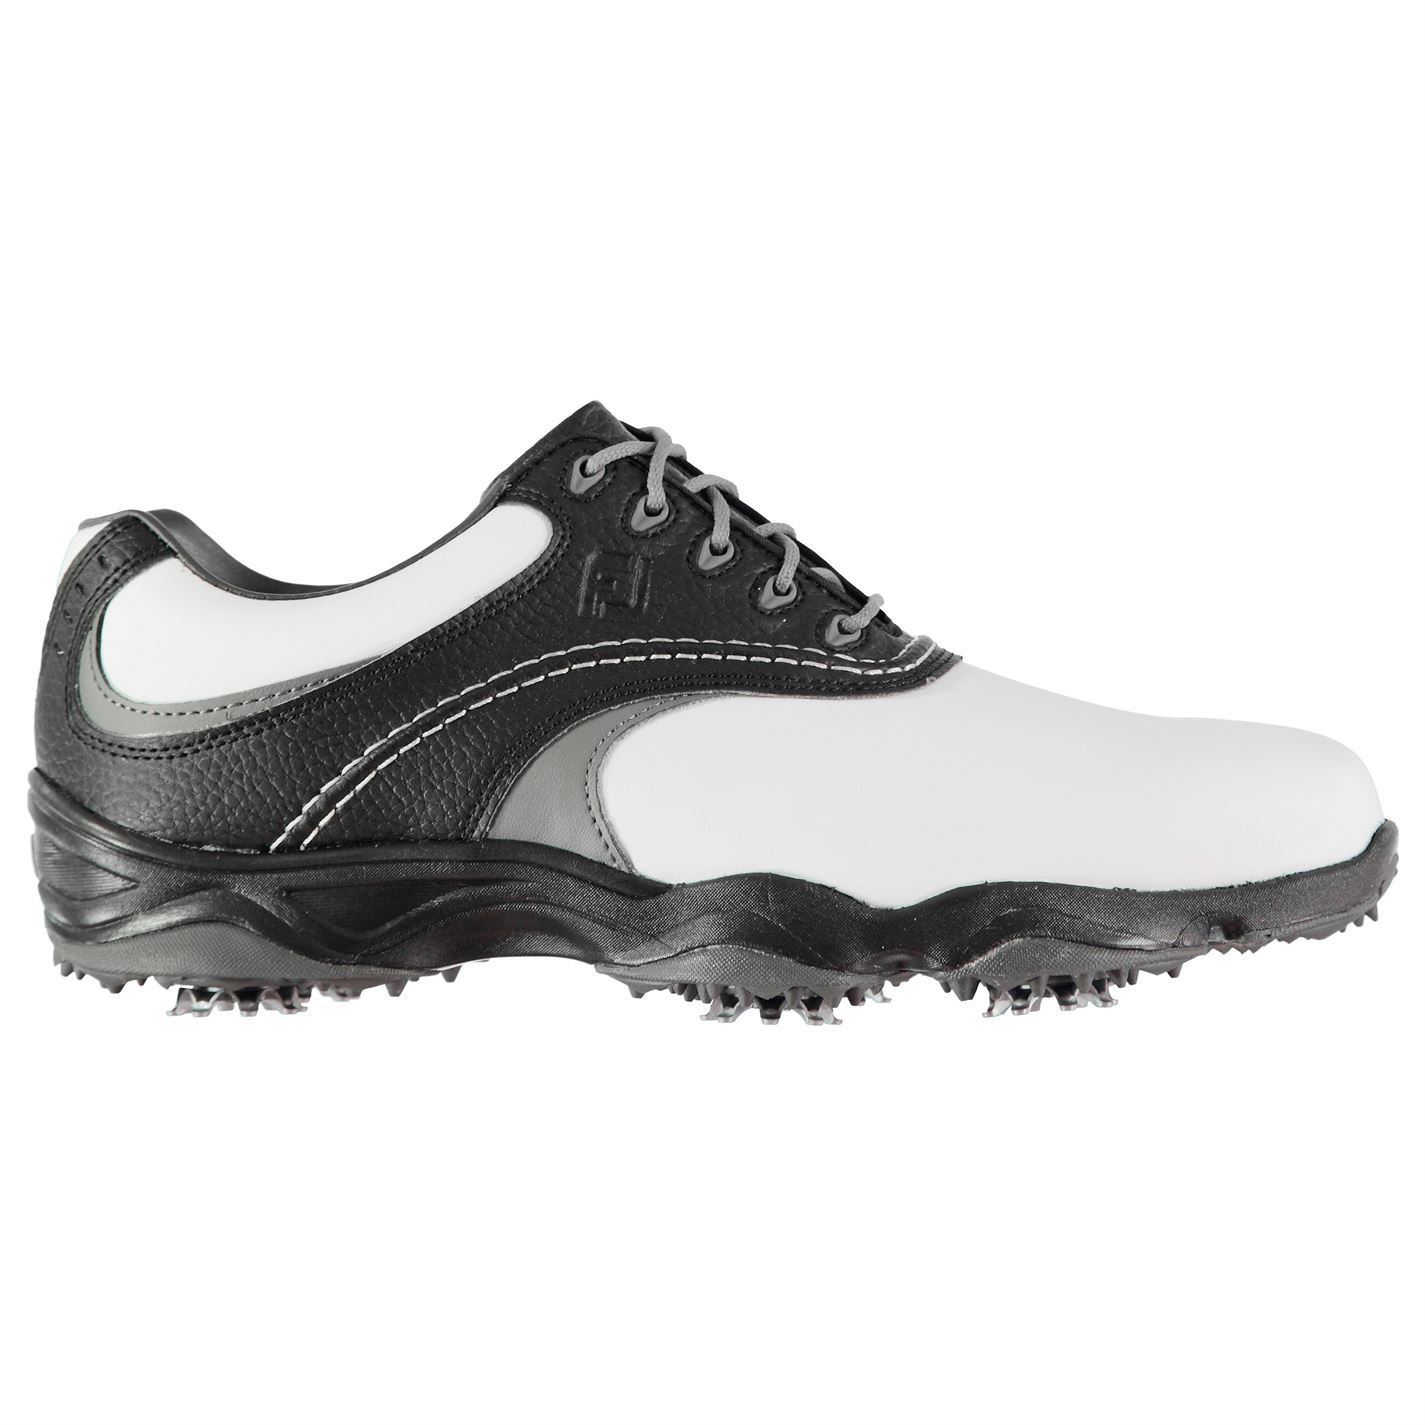 Footjoy-Originals-Golf-Shoes-Mens-Spikes-Footwear thumbnail 19